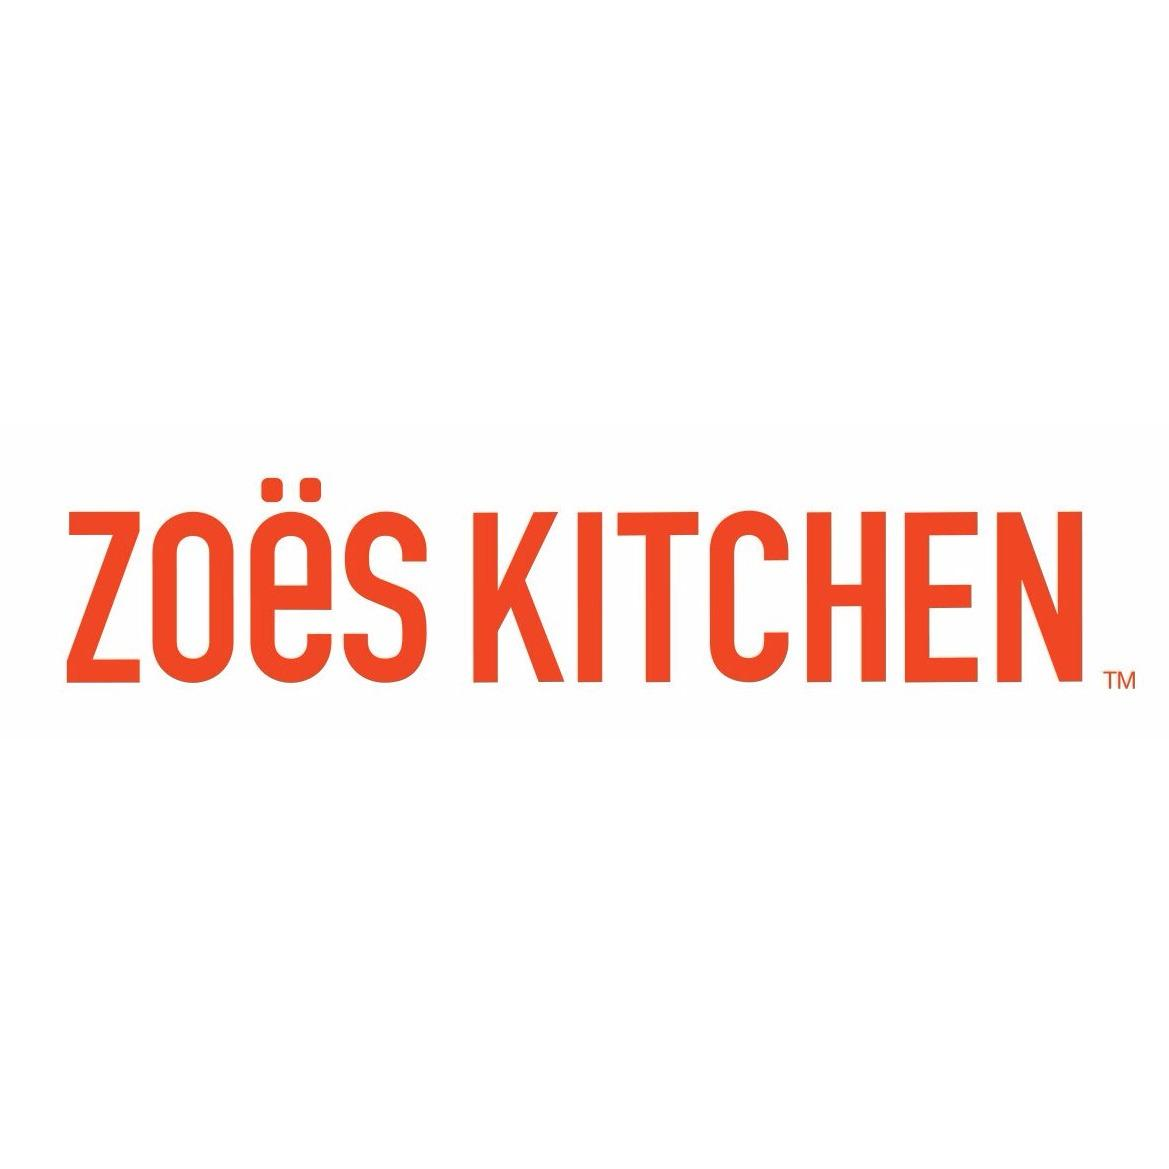 Zoes Kitchen image 7